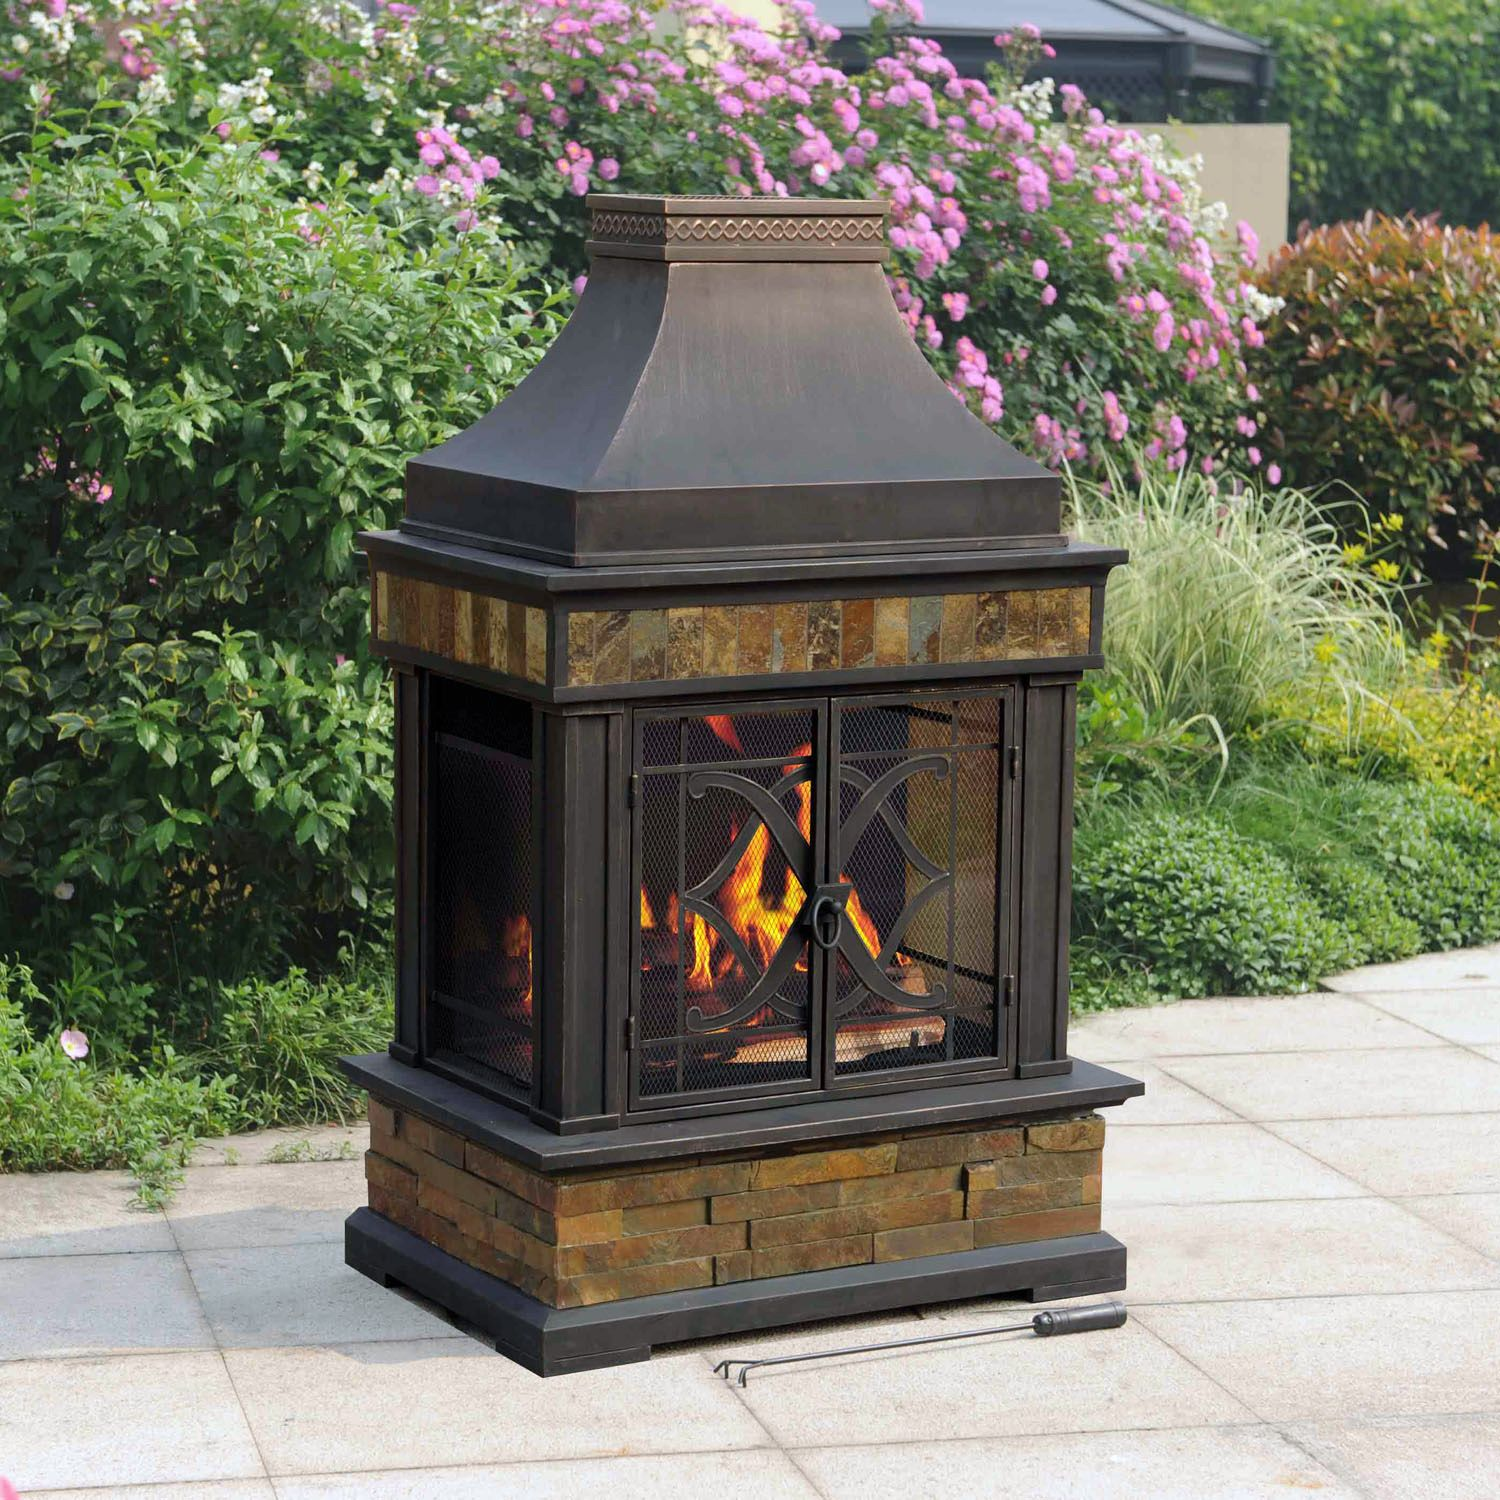 Chimney outdoor fire pit fireplace design ideas for Where to buy outdoor fireplace